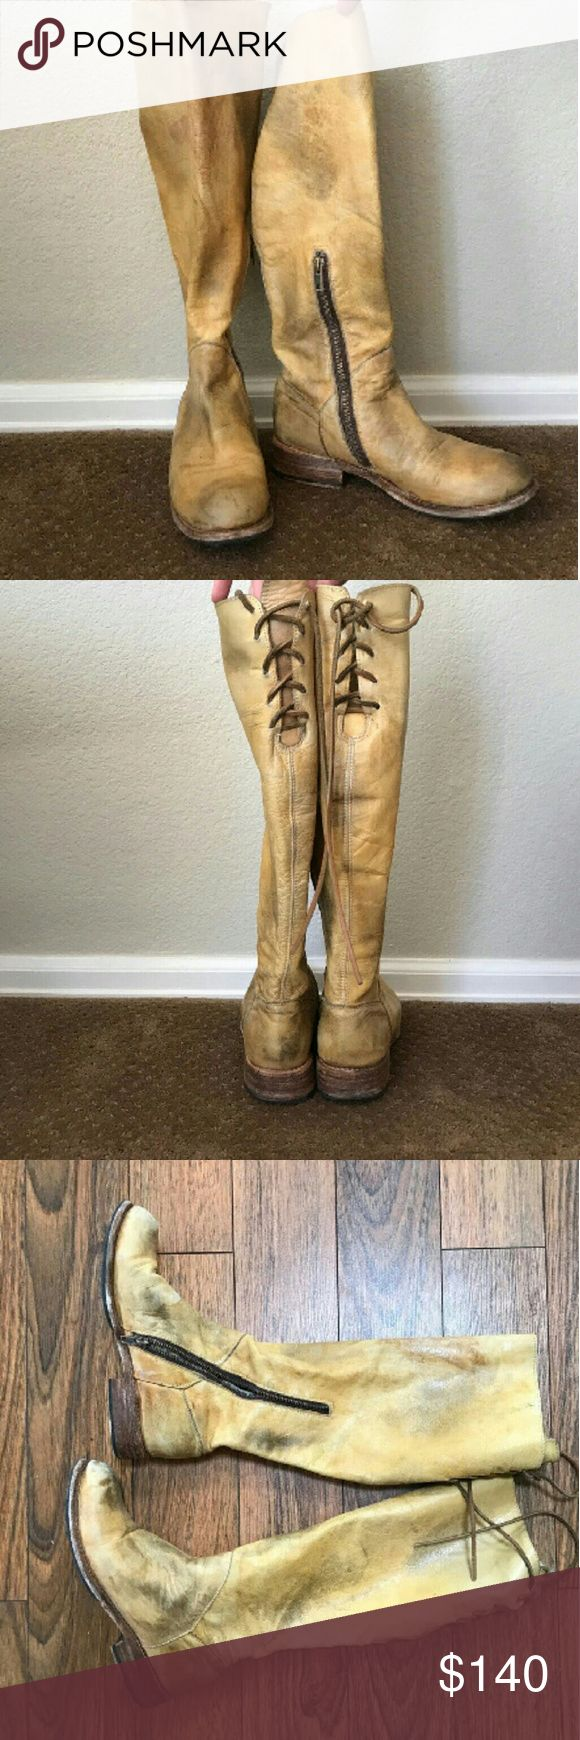 Bed Stu (Free People) Natural Mechanic boots Excellent condition size 7 the left boot feels more like a 7.5 but says it's a 7 the right boot fits my size 7 foot perfect very soft blonde or white  leather  super cute distressed style Bed Stu Shoes Combat & Moto Boots